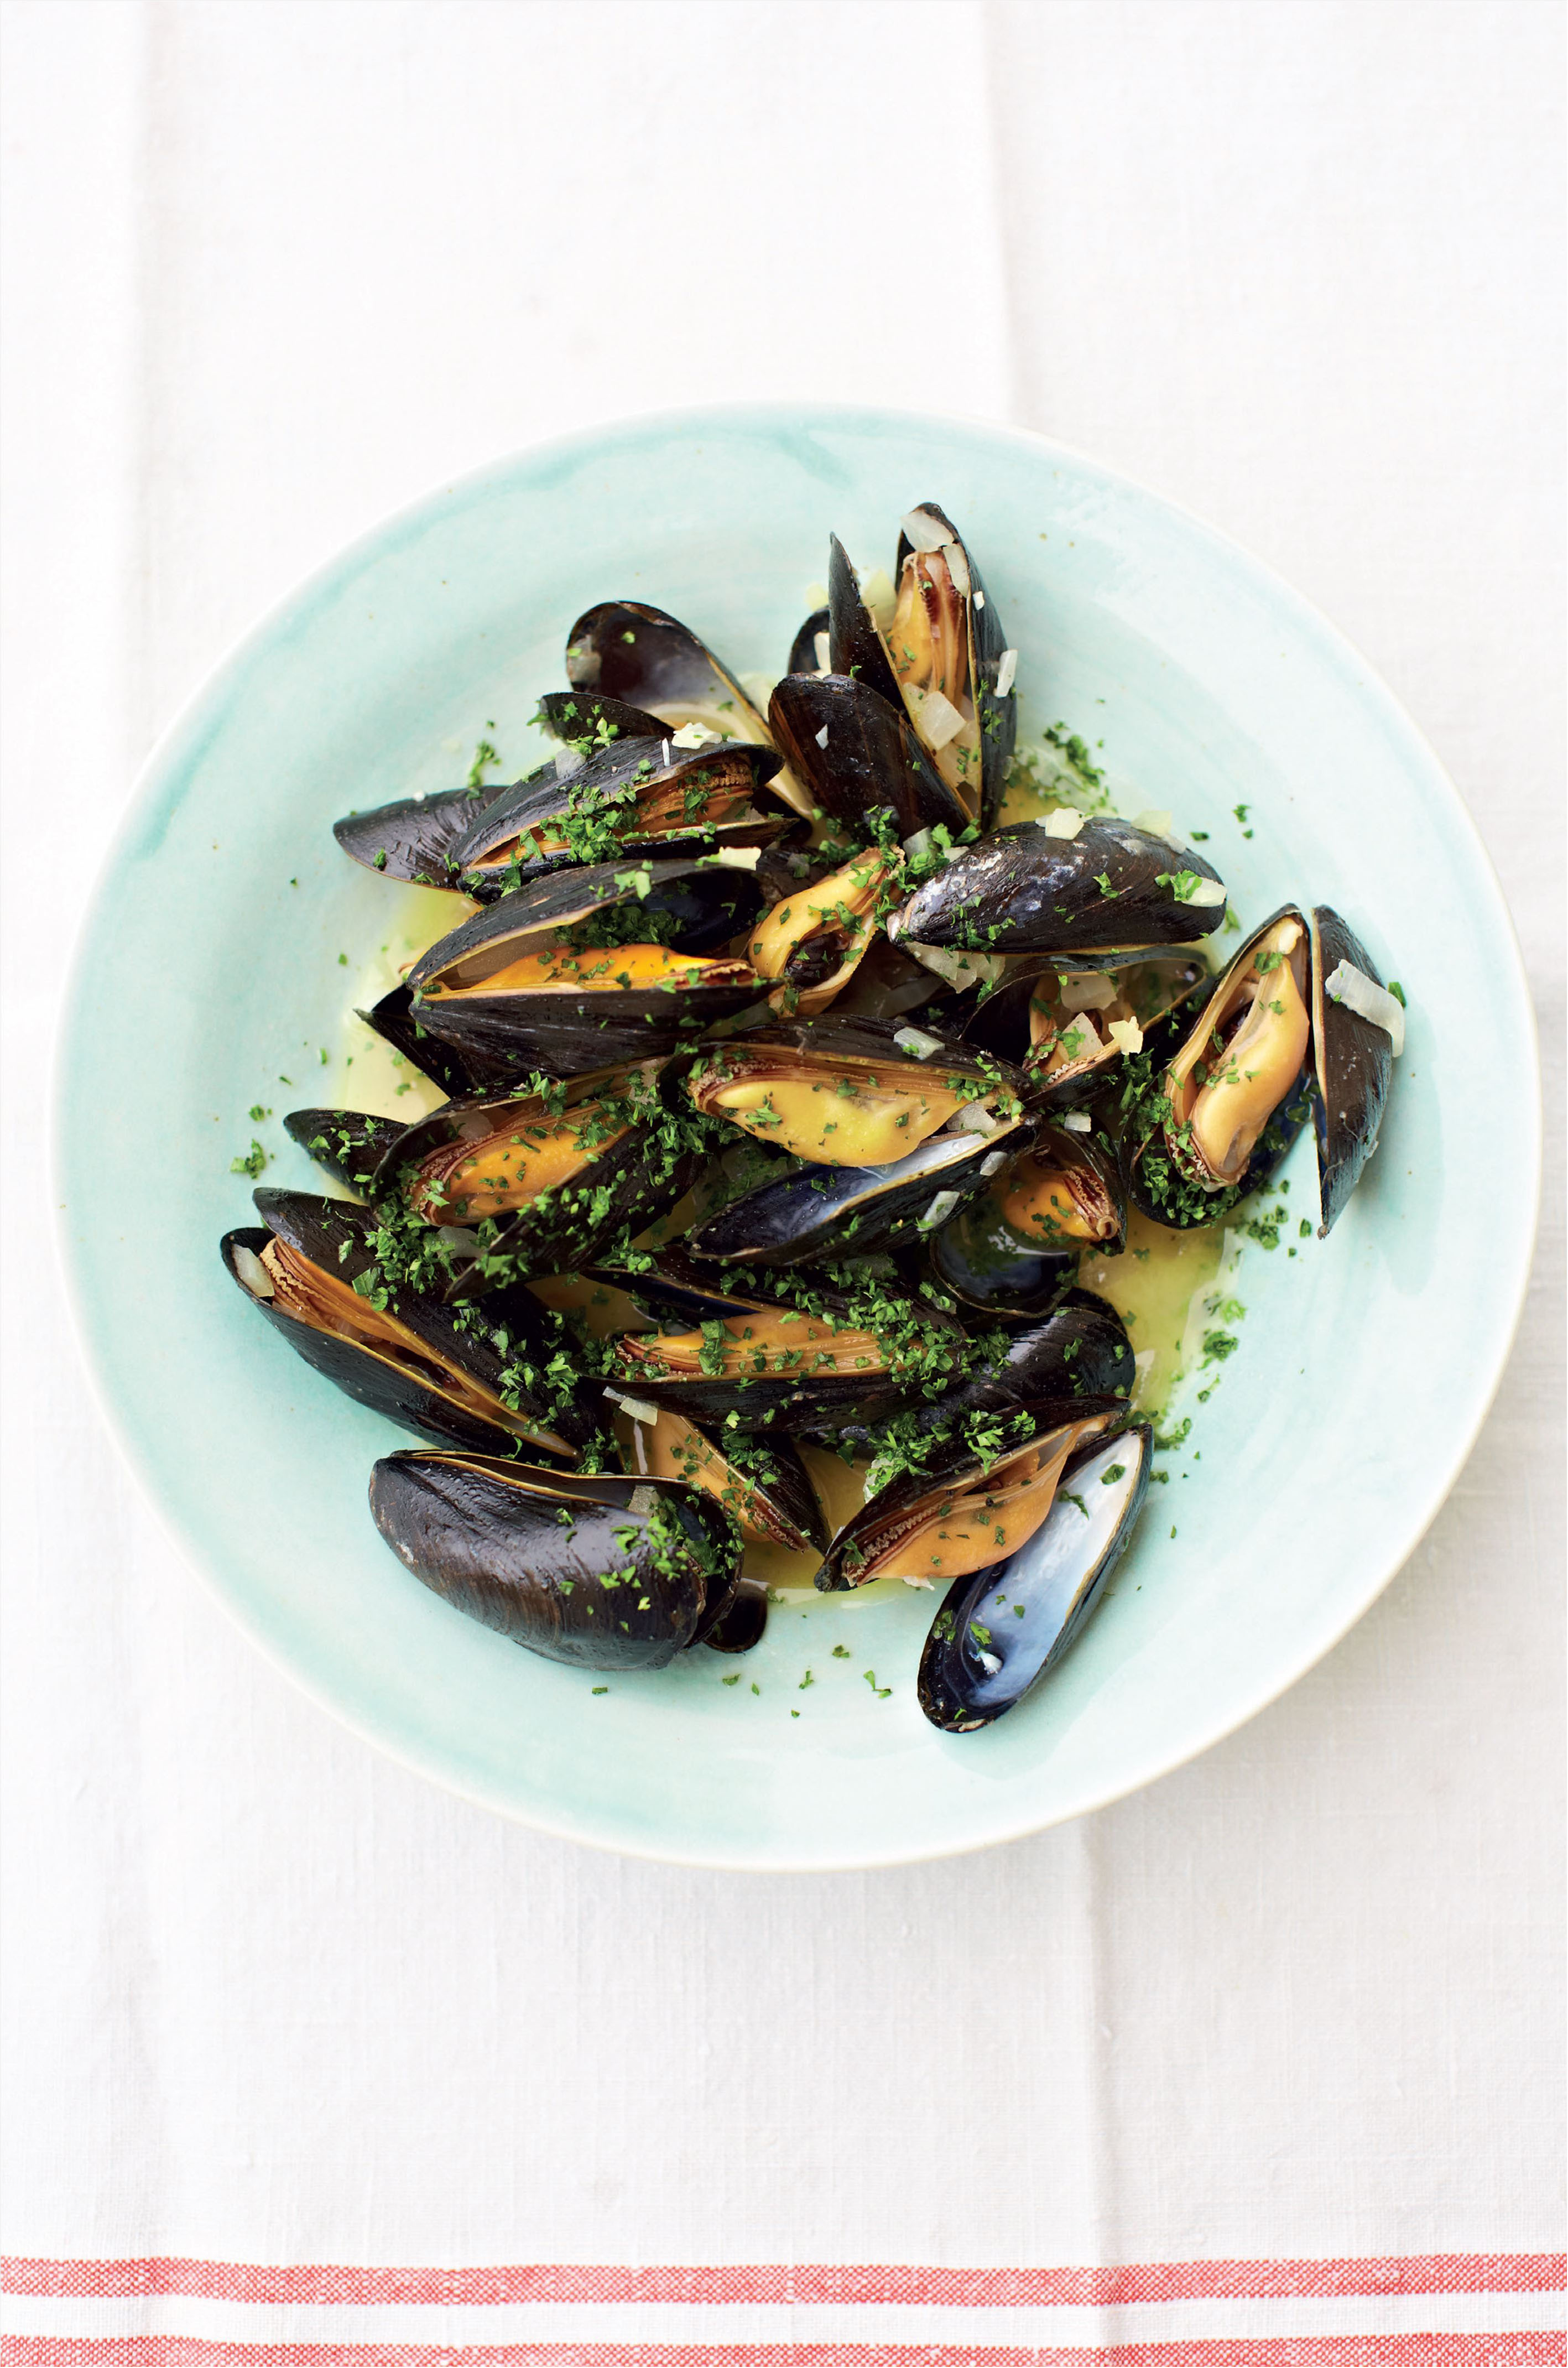 Mussels in beer with onion, garlic and parsley